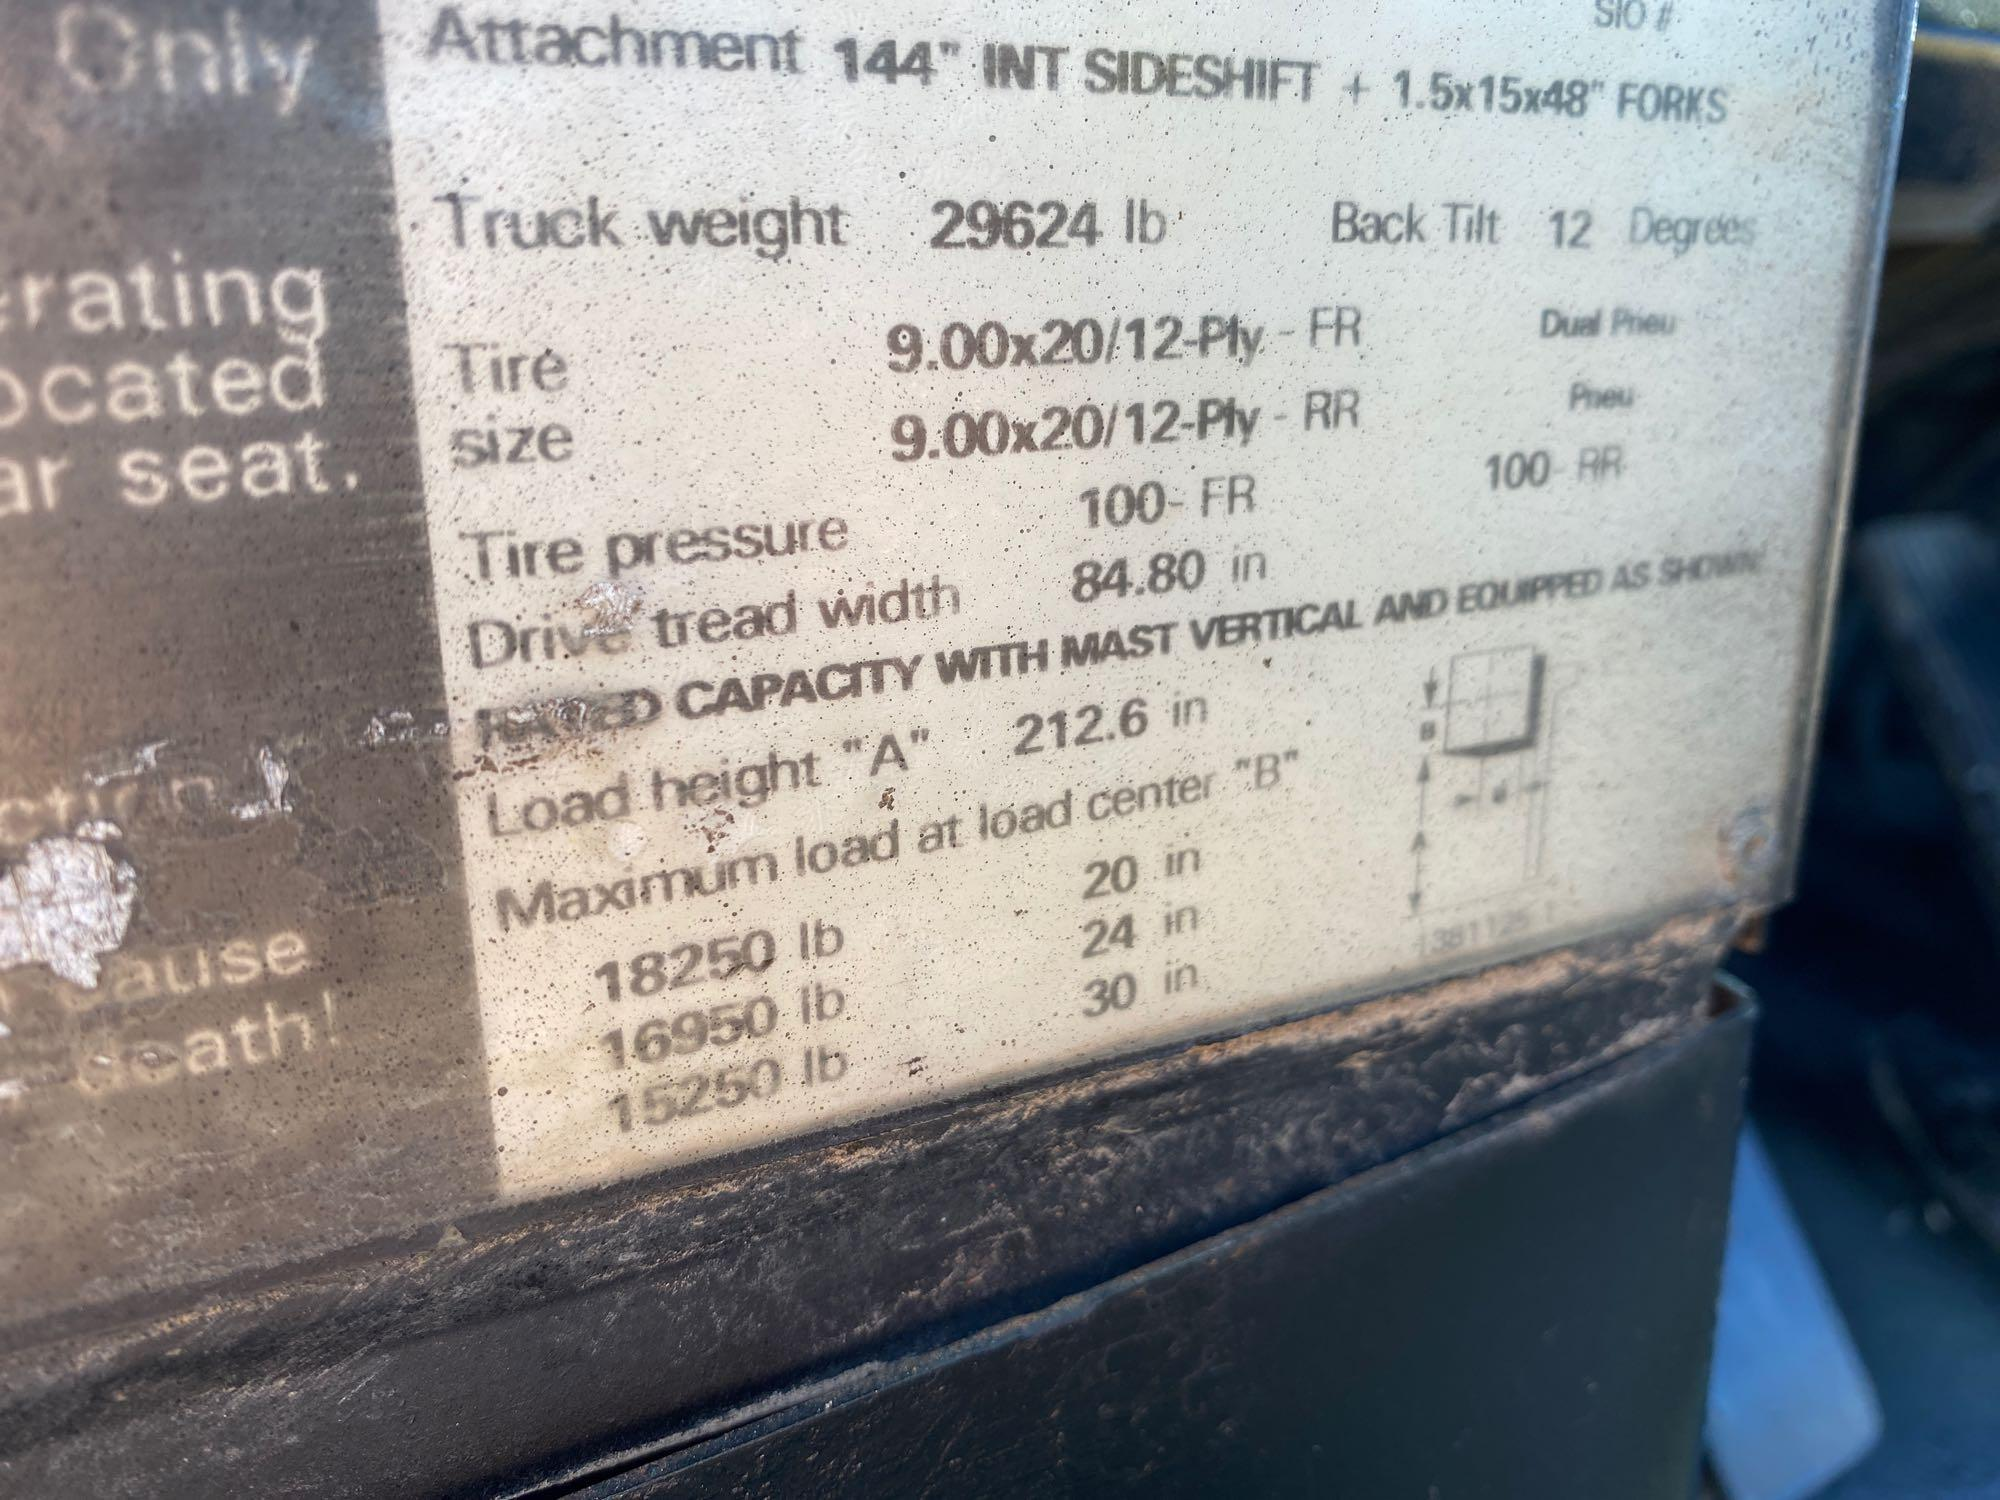 """HYSTER DIESEL FORKLIFT MODEL H190XL2, APPROX. 19,000 LB CAPACITY, 212.6"""" HEIGHT CAPACITY, RUNS AND O - Image 10 of 12"""